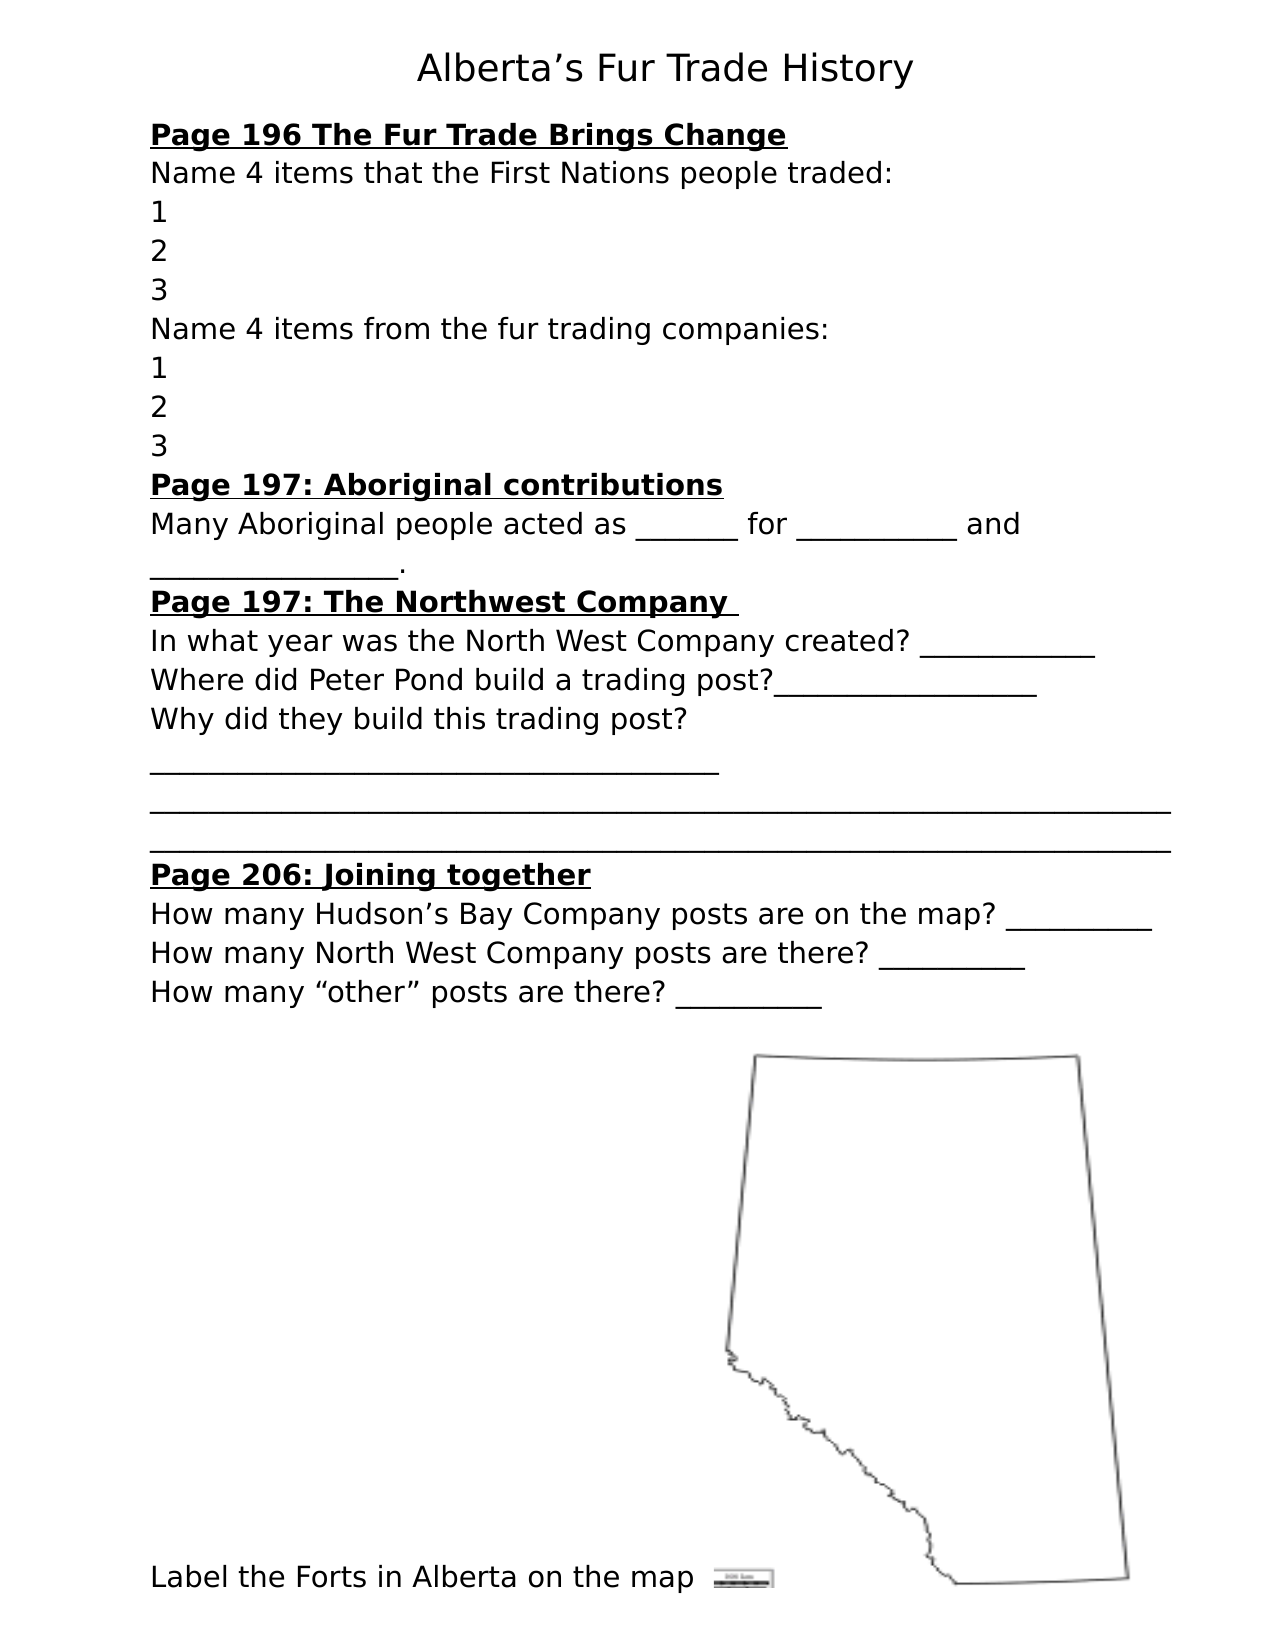 Our Alberta Textbook Fur Trade Resource Preview